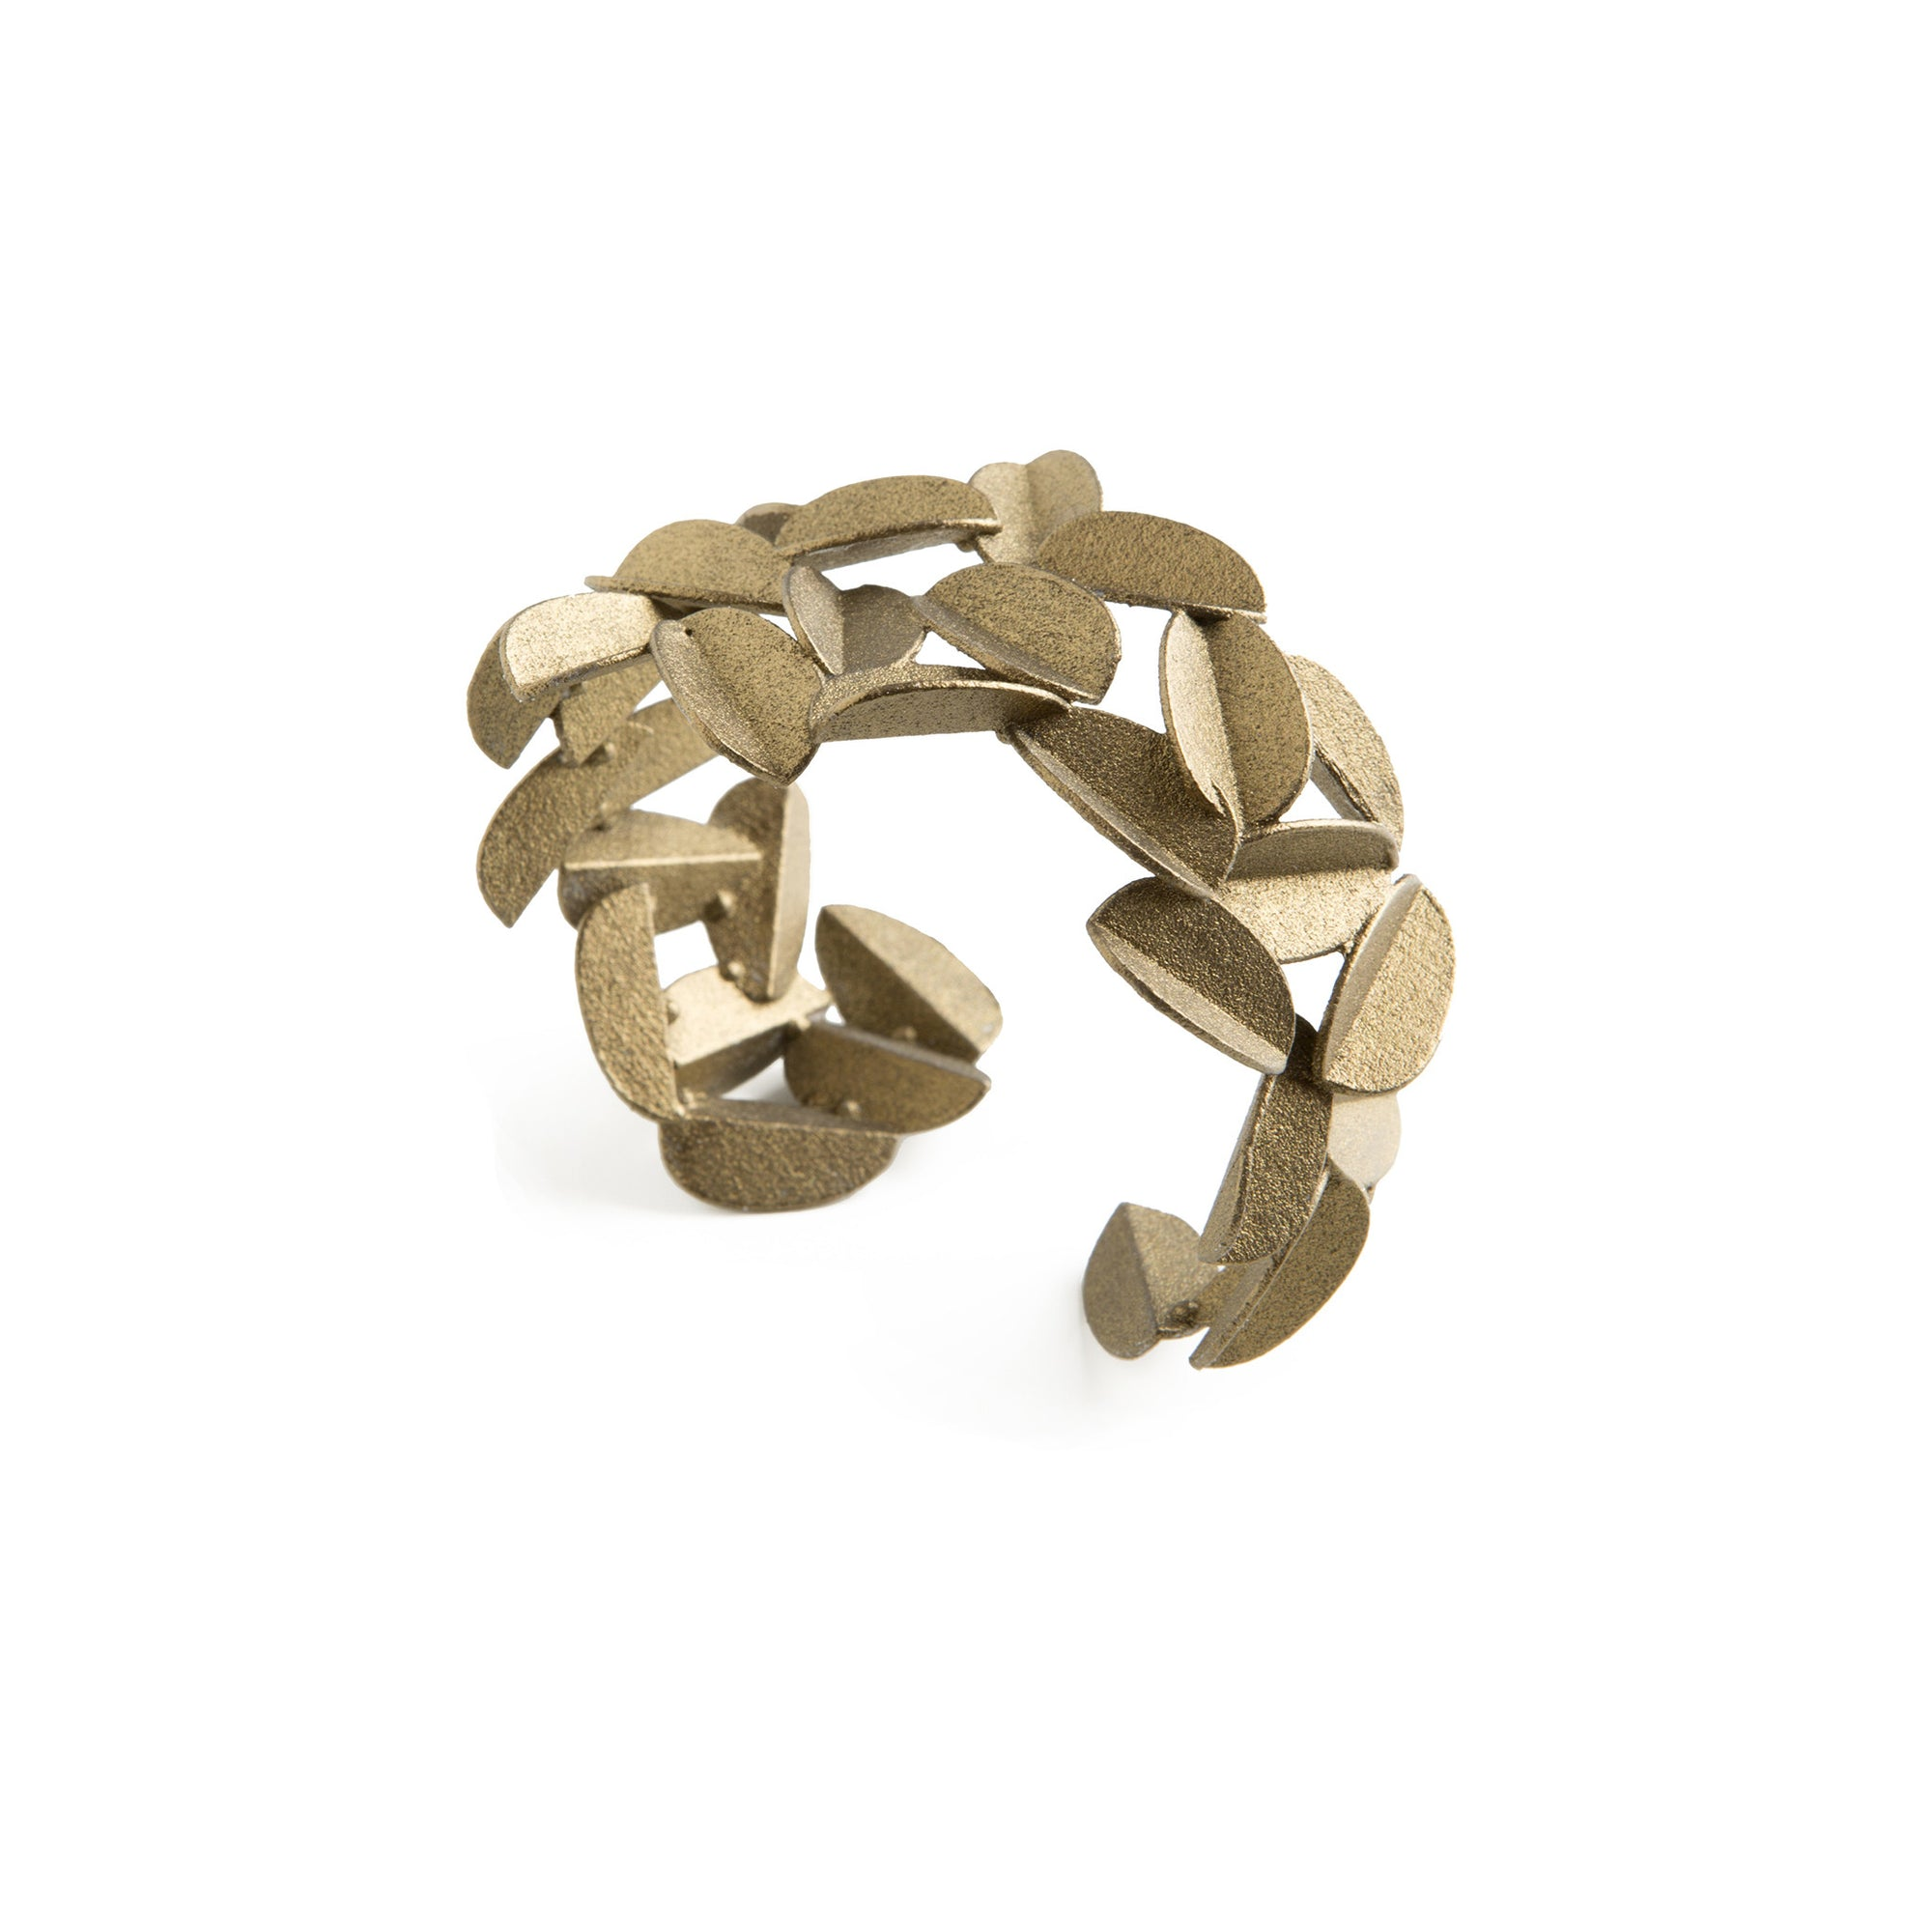 3D Printed Gold Leaves Cuff Bracelet | Getty Store